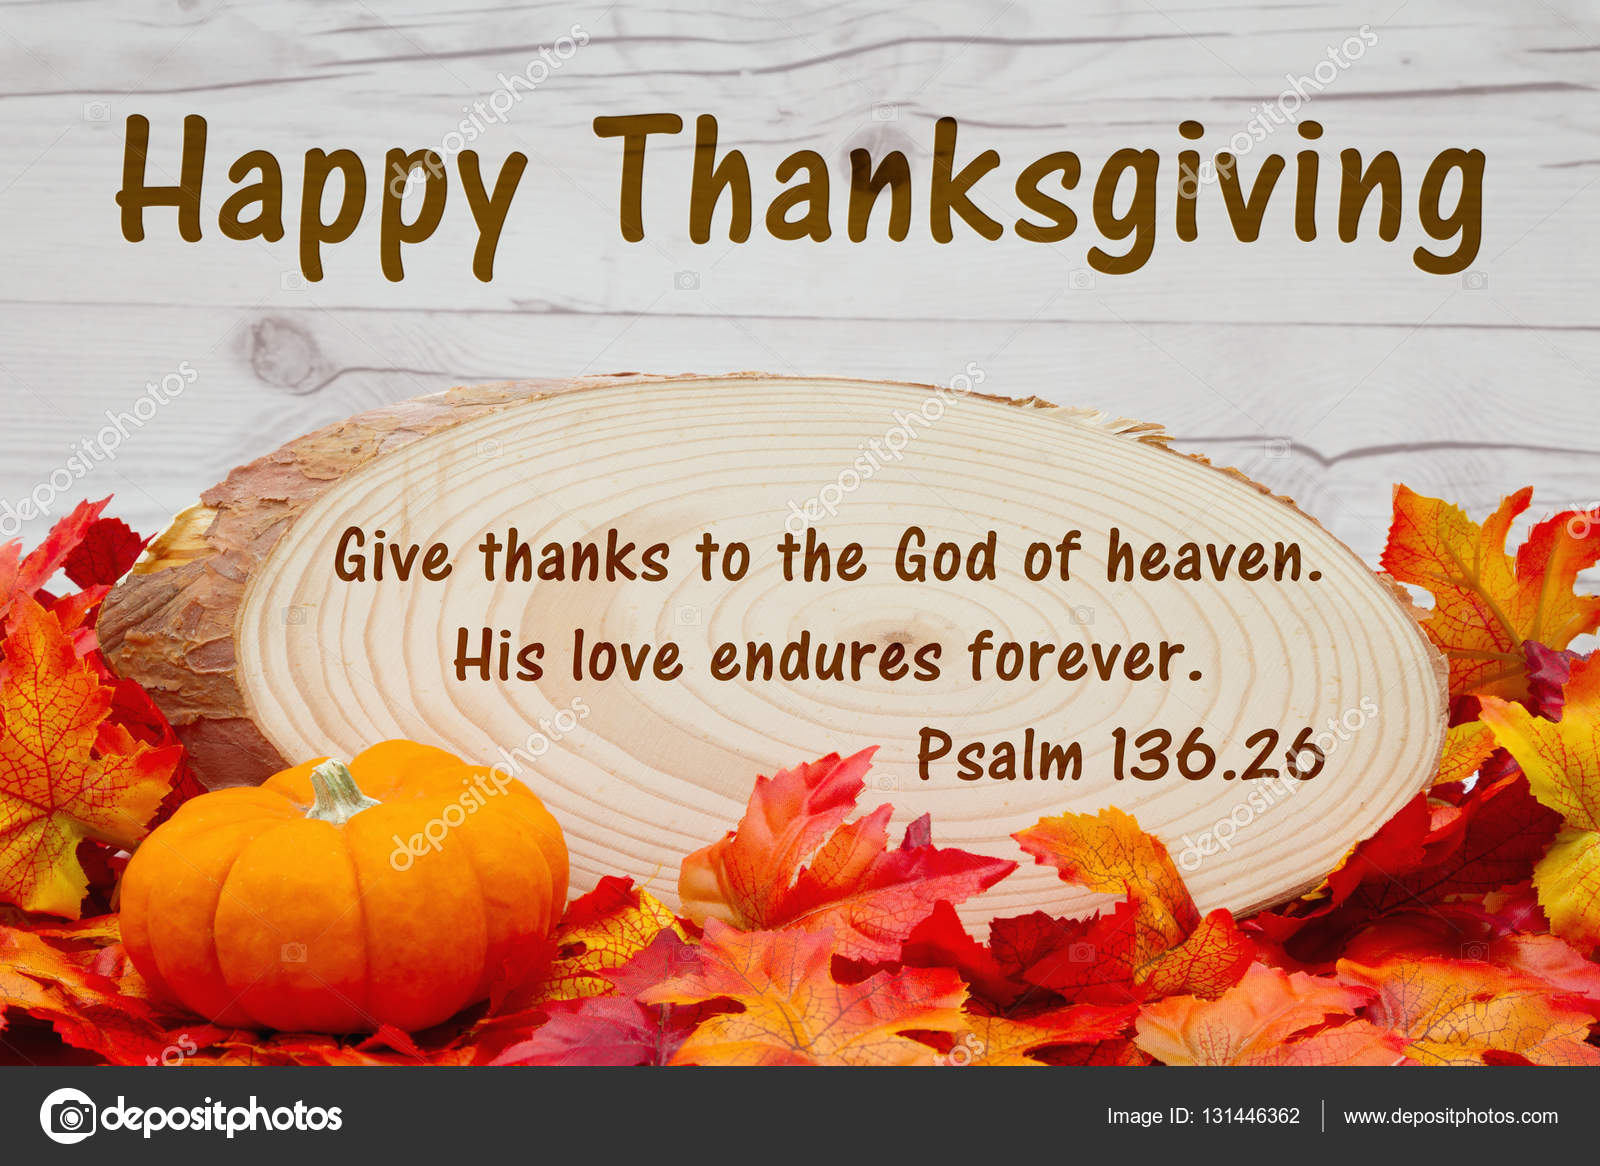 happy thanksgiving message stock photo karenr 131446362